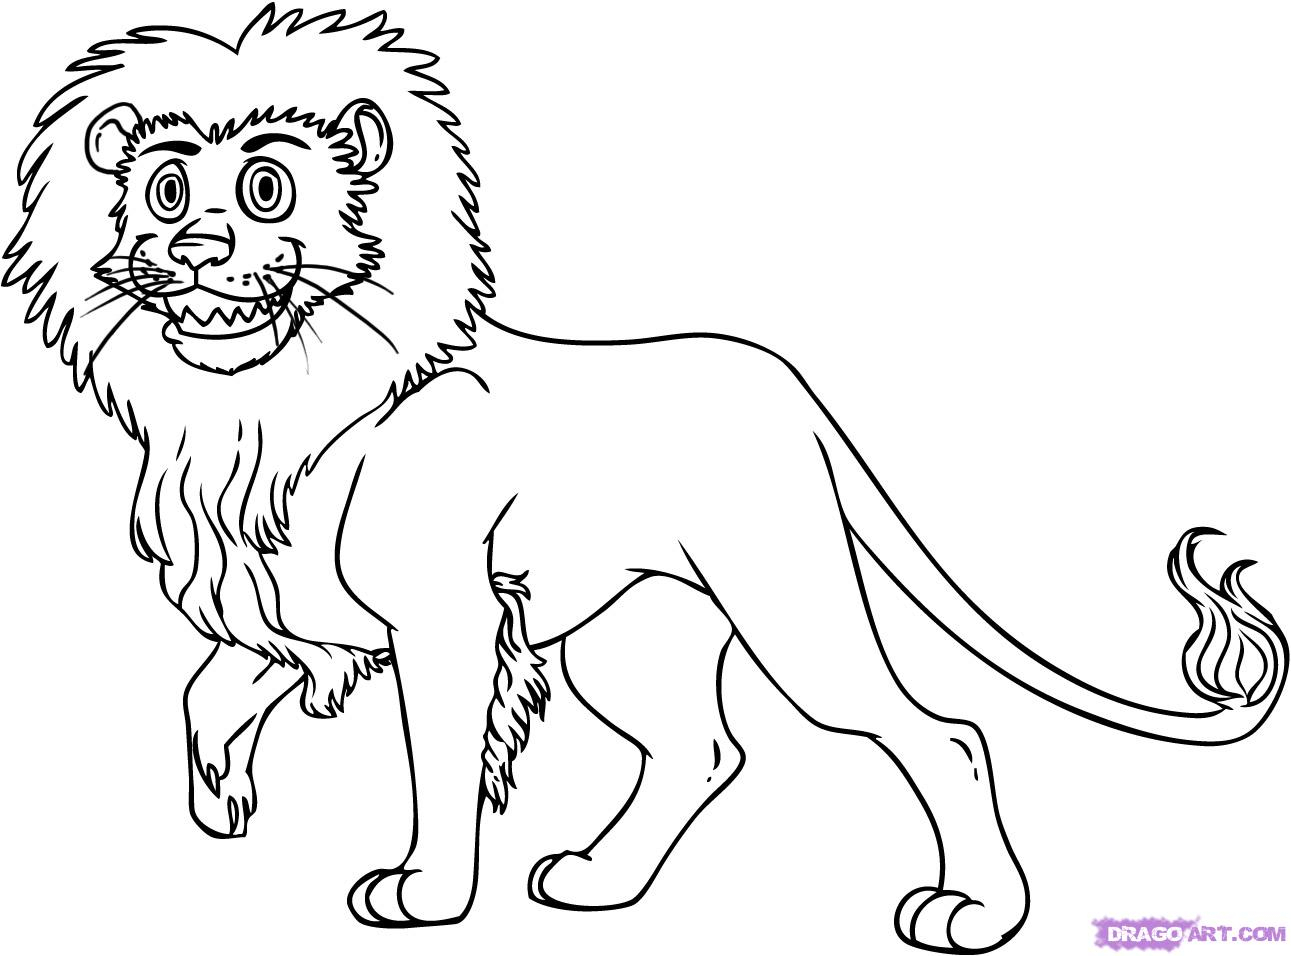 1291x956 Cartoon Lion Drawing How To Draw A Lion Face Lion Head Easy Draw